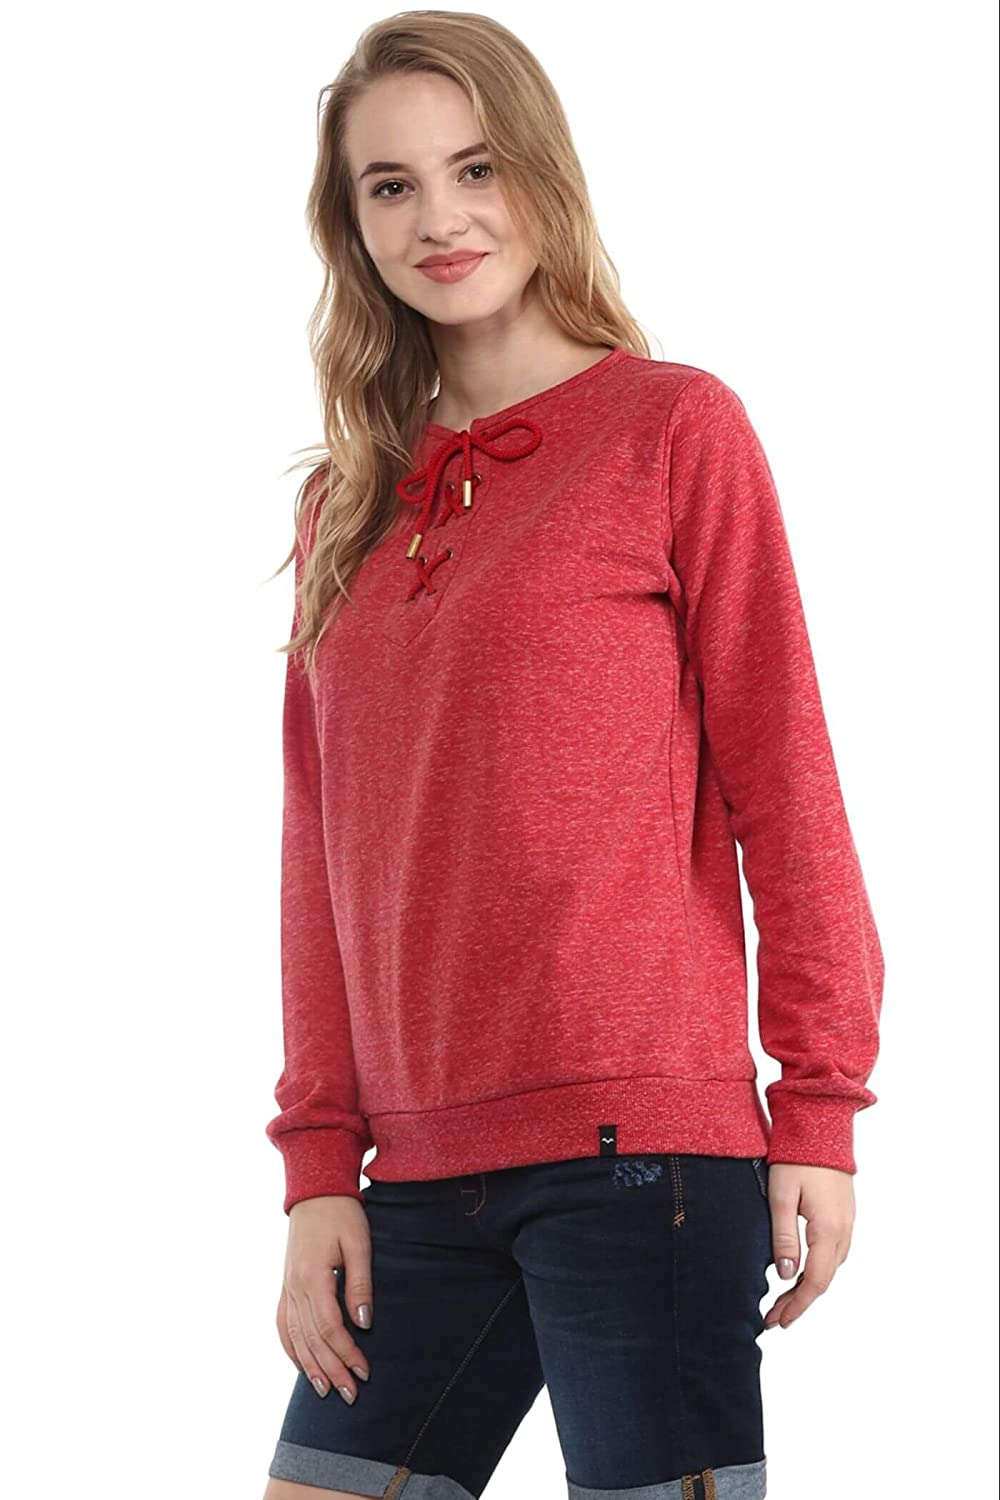 bfc33c8785 THE VANCA Women Red Round Neck Sweatshirt With Tie Up Detail At Neckline  (L)  Amazon.co.uk  Clothing